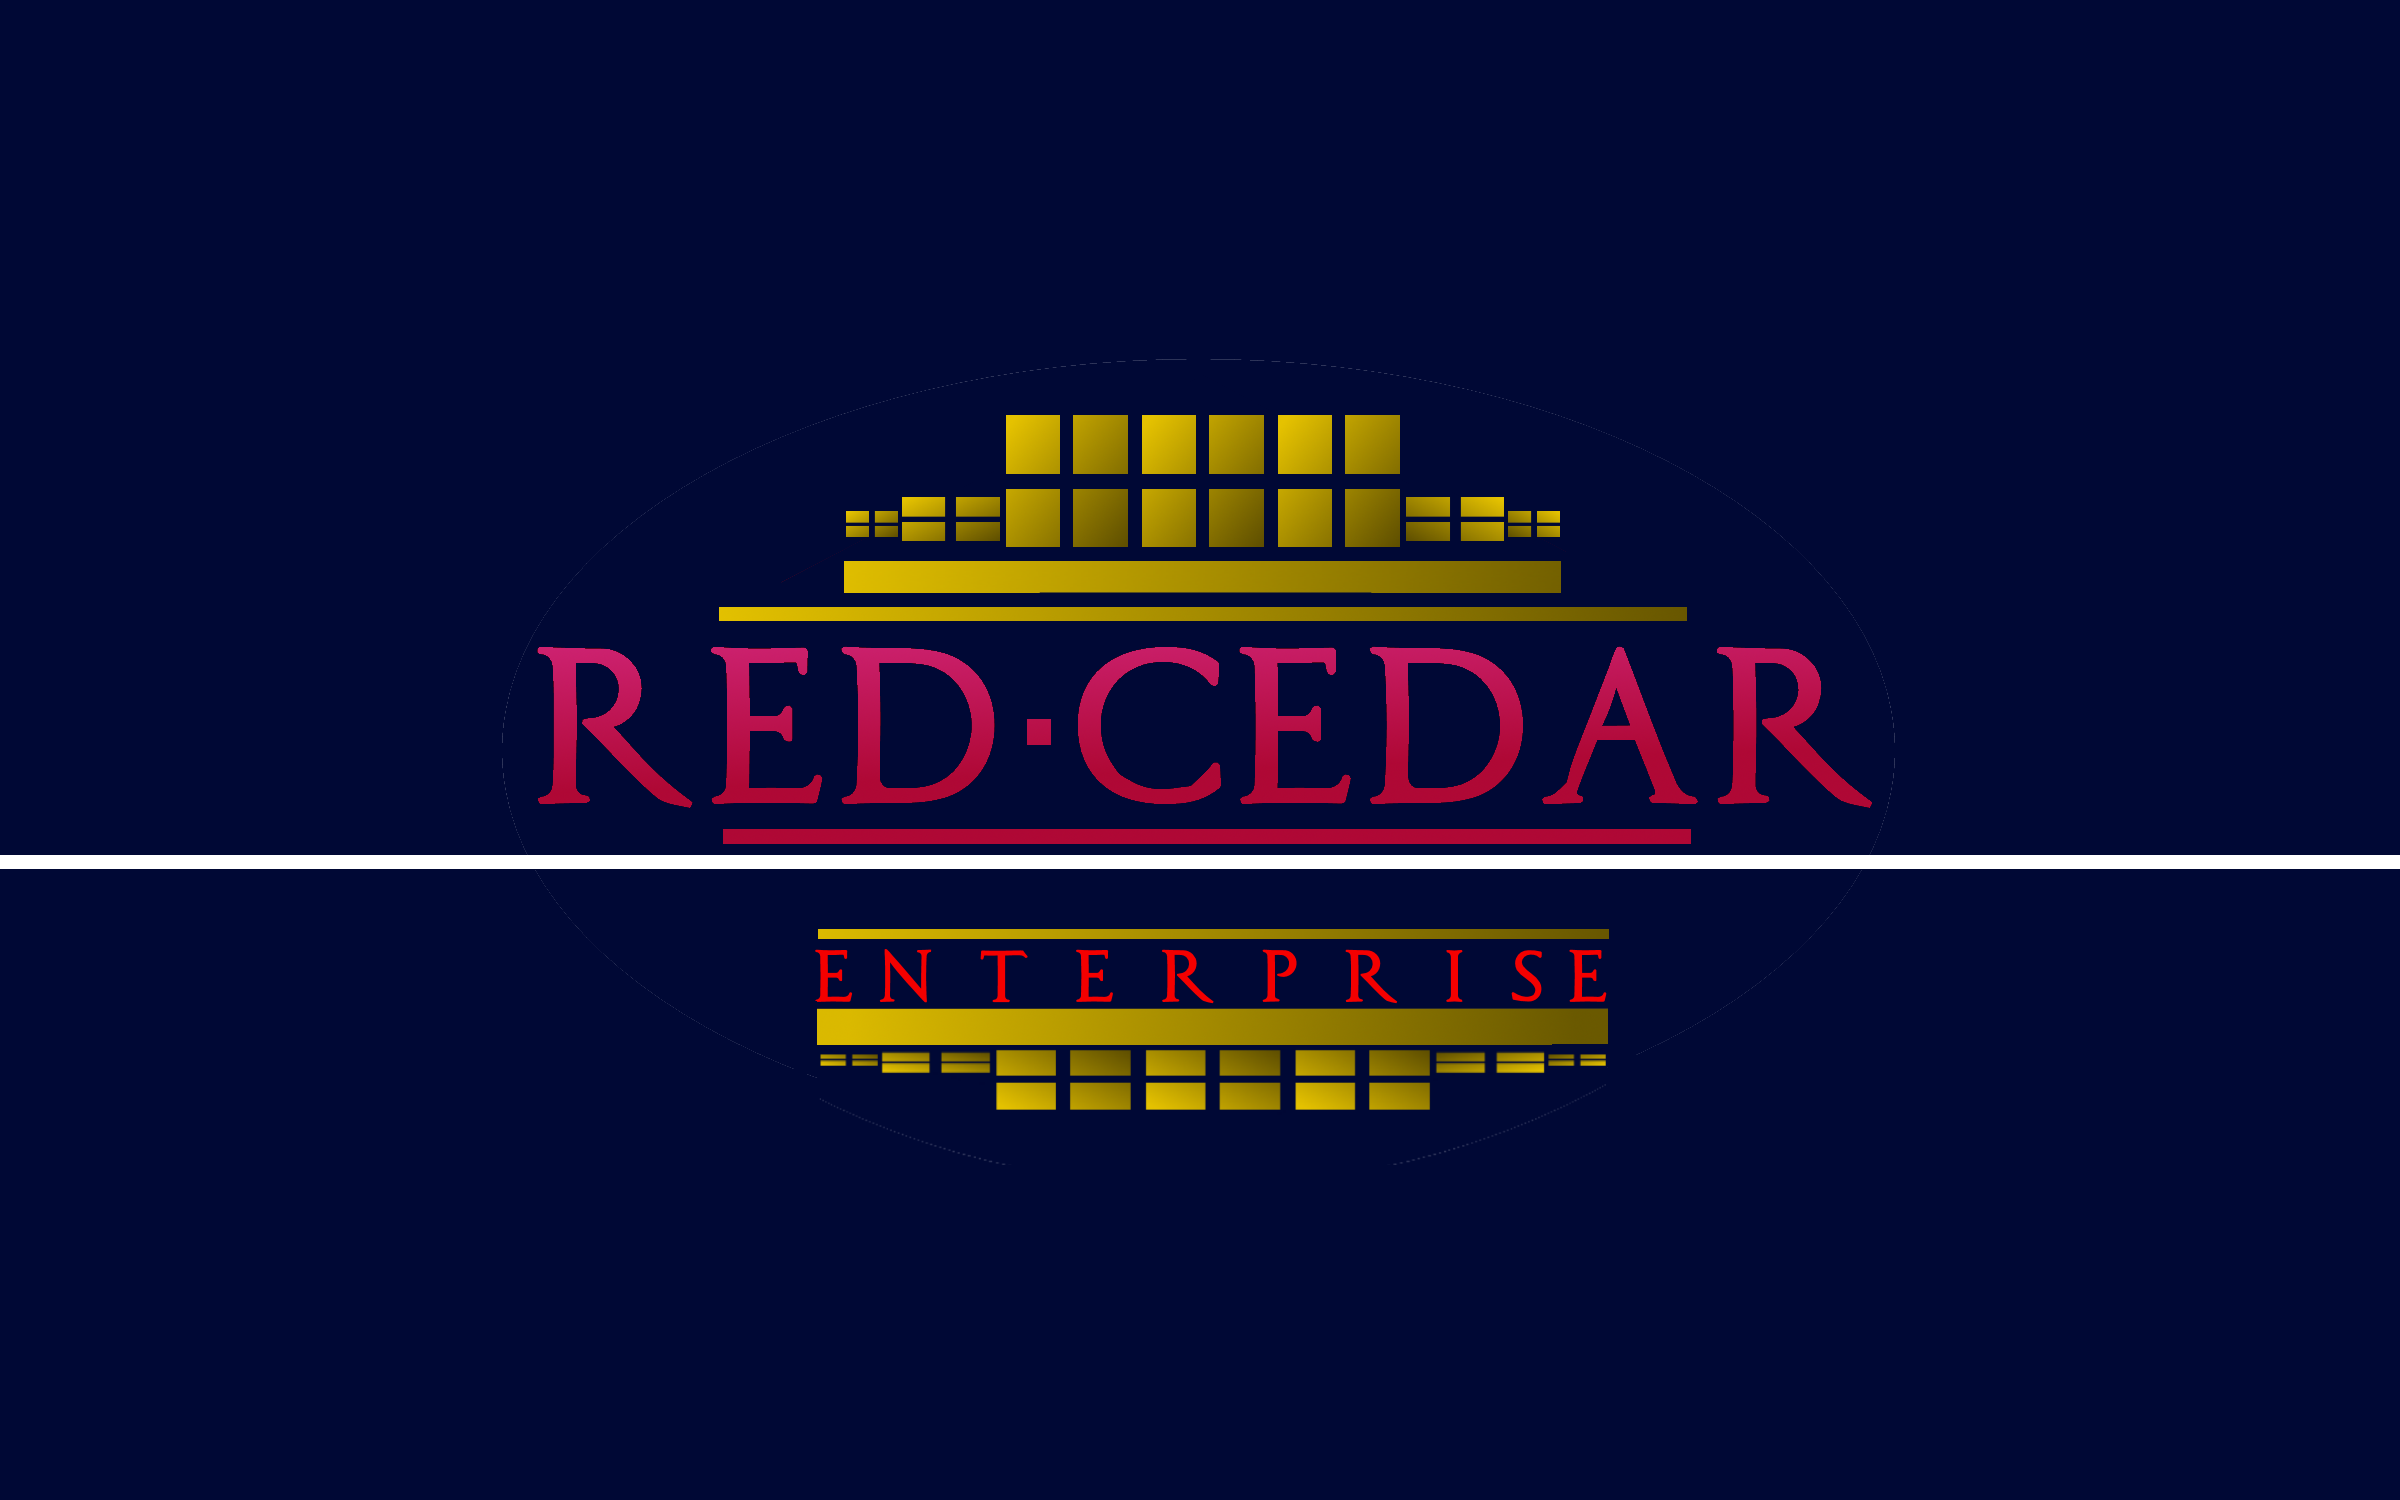 Logo Design by Roberto Bassi - Entry No. 79 in the Logo Design Contest Unique Logo Design Wanted for Red Cedar Enterprise.